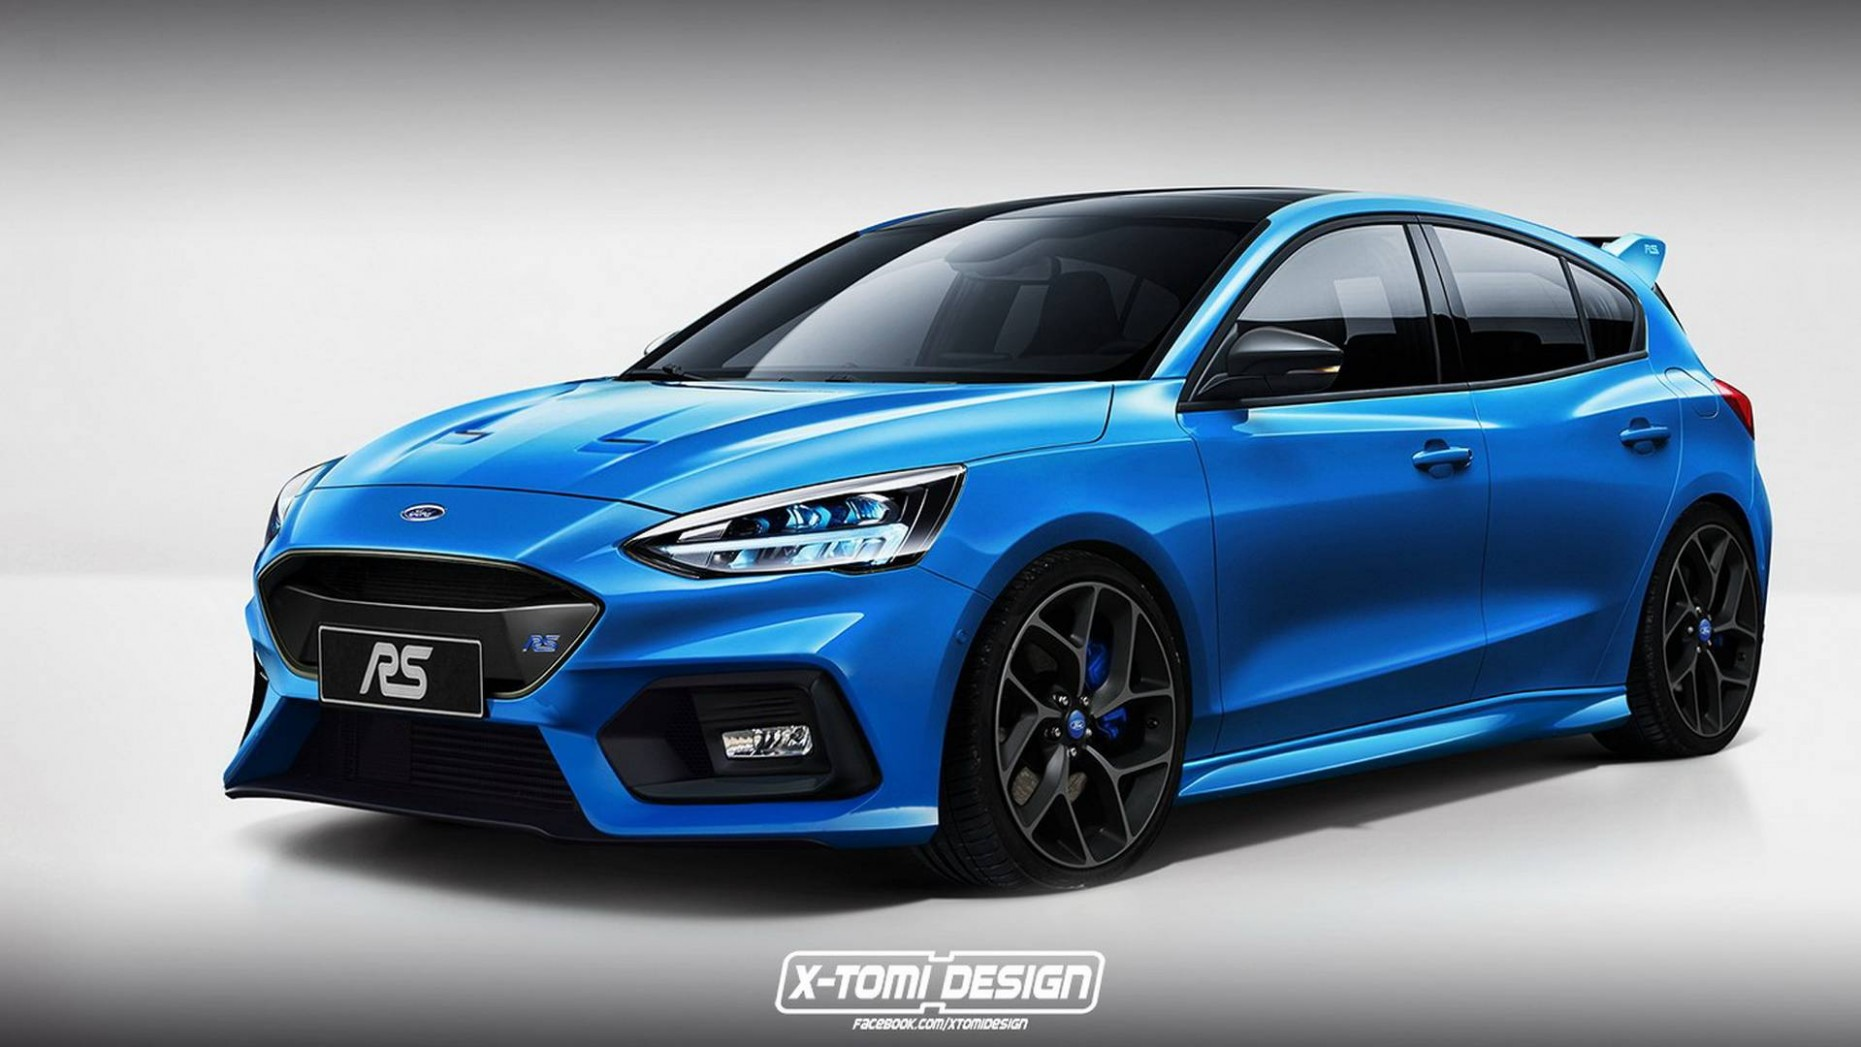 New Ford Focus RS With Electric Rear Axle Could Have Over 4 HP - Ford Focus St 2021